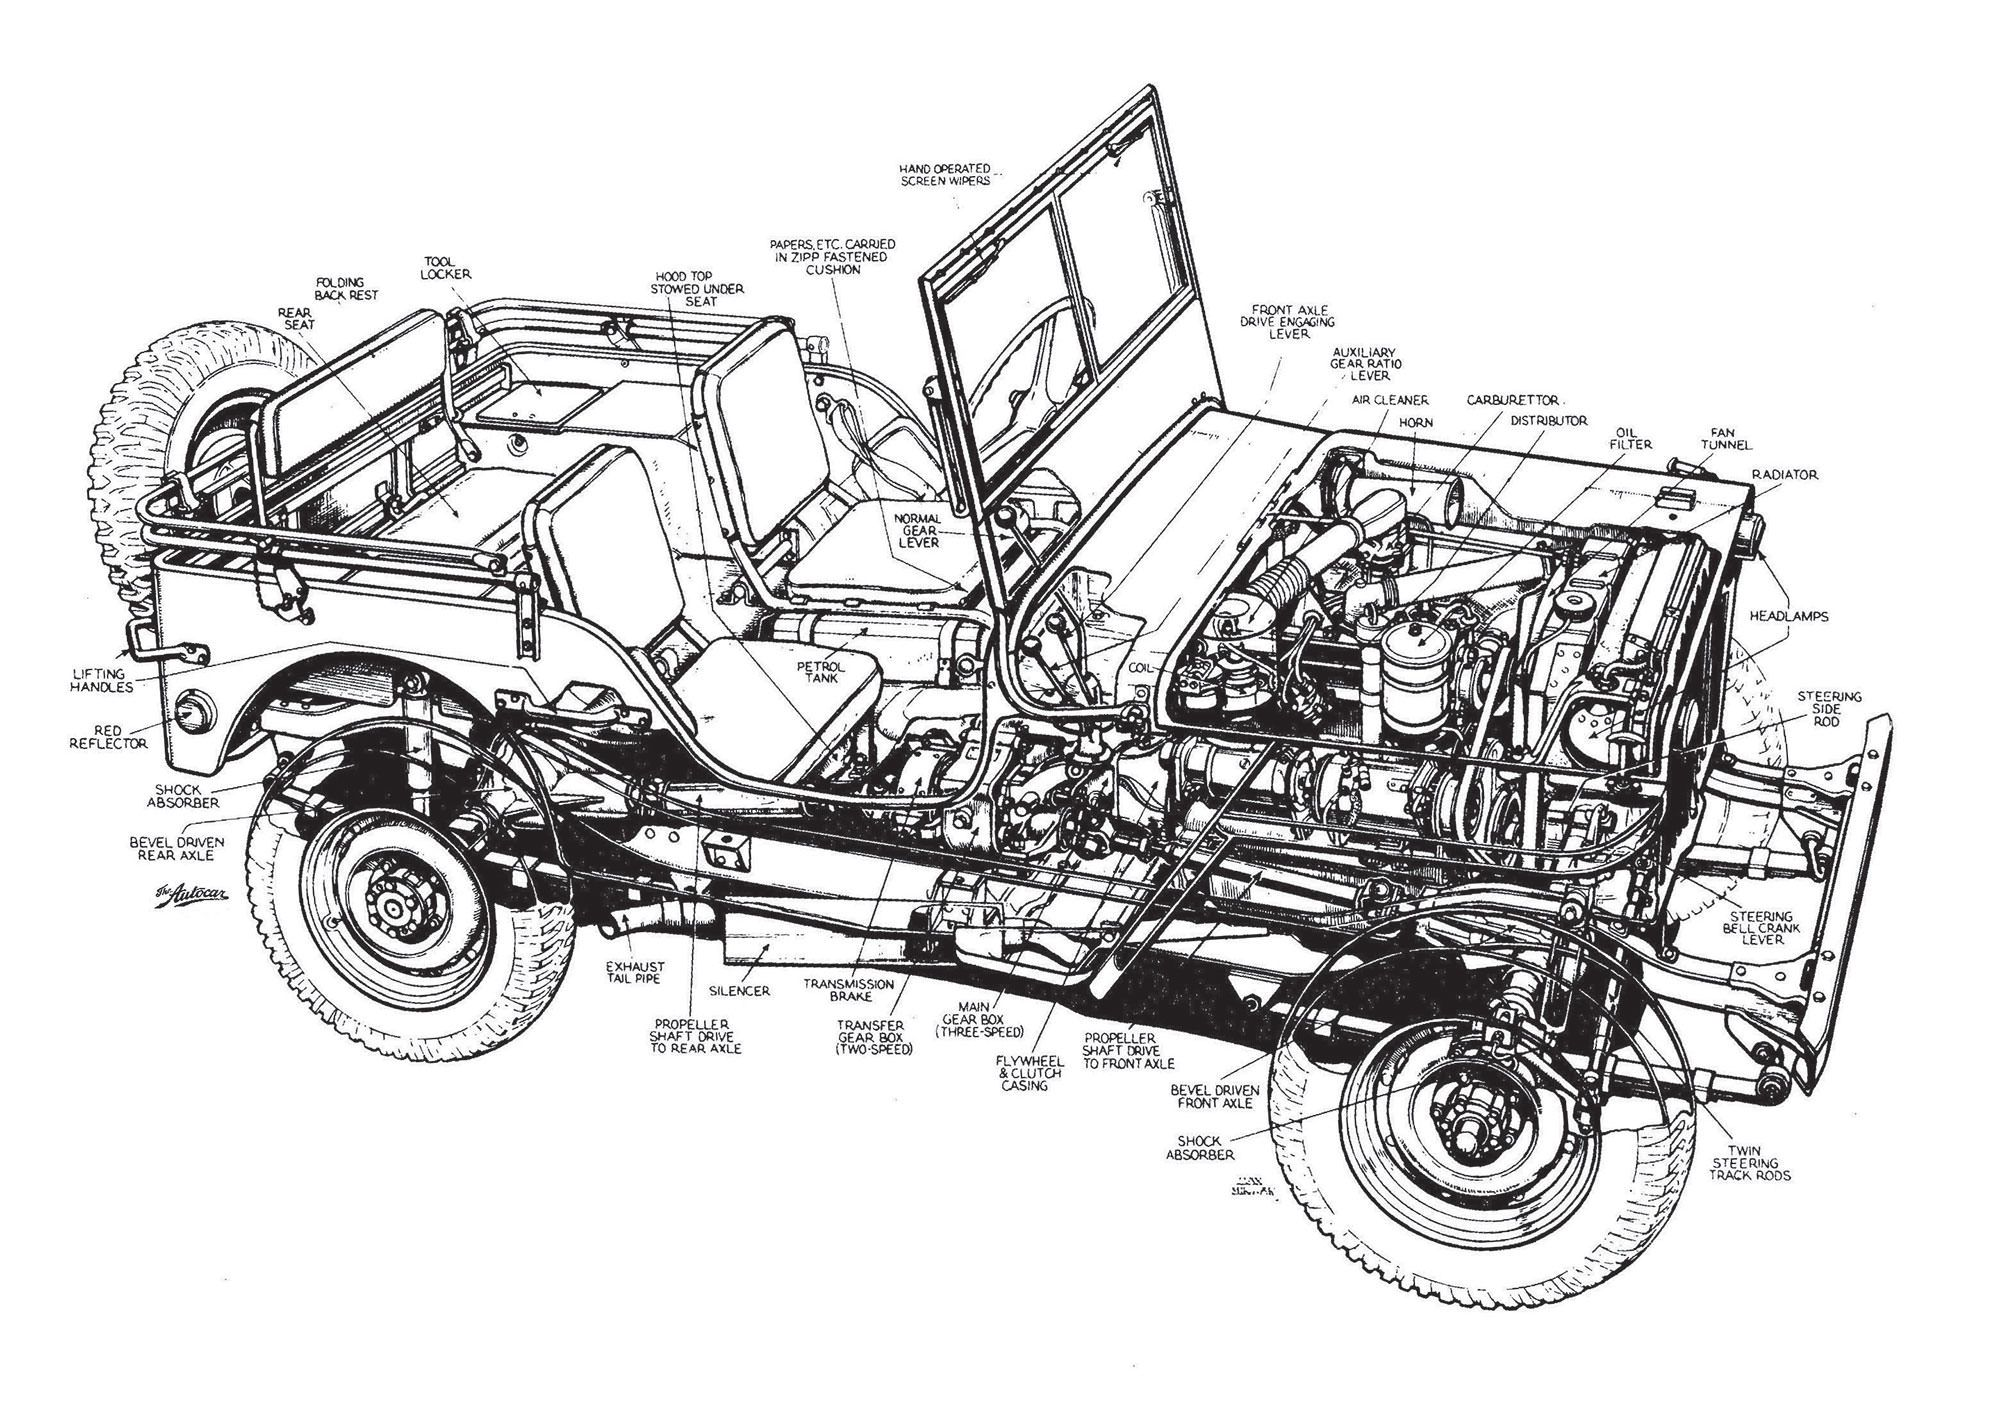 Willys jeep cutaway jeeps cutaway and vehicle the willys jeep is a vehicle that id love to see make a comeback malvernweather Image collections